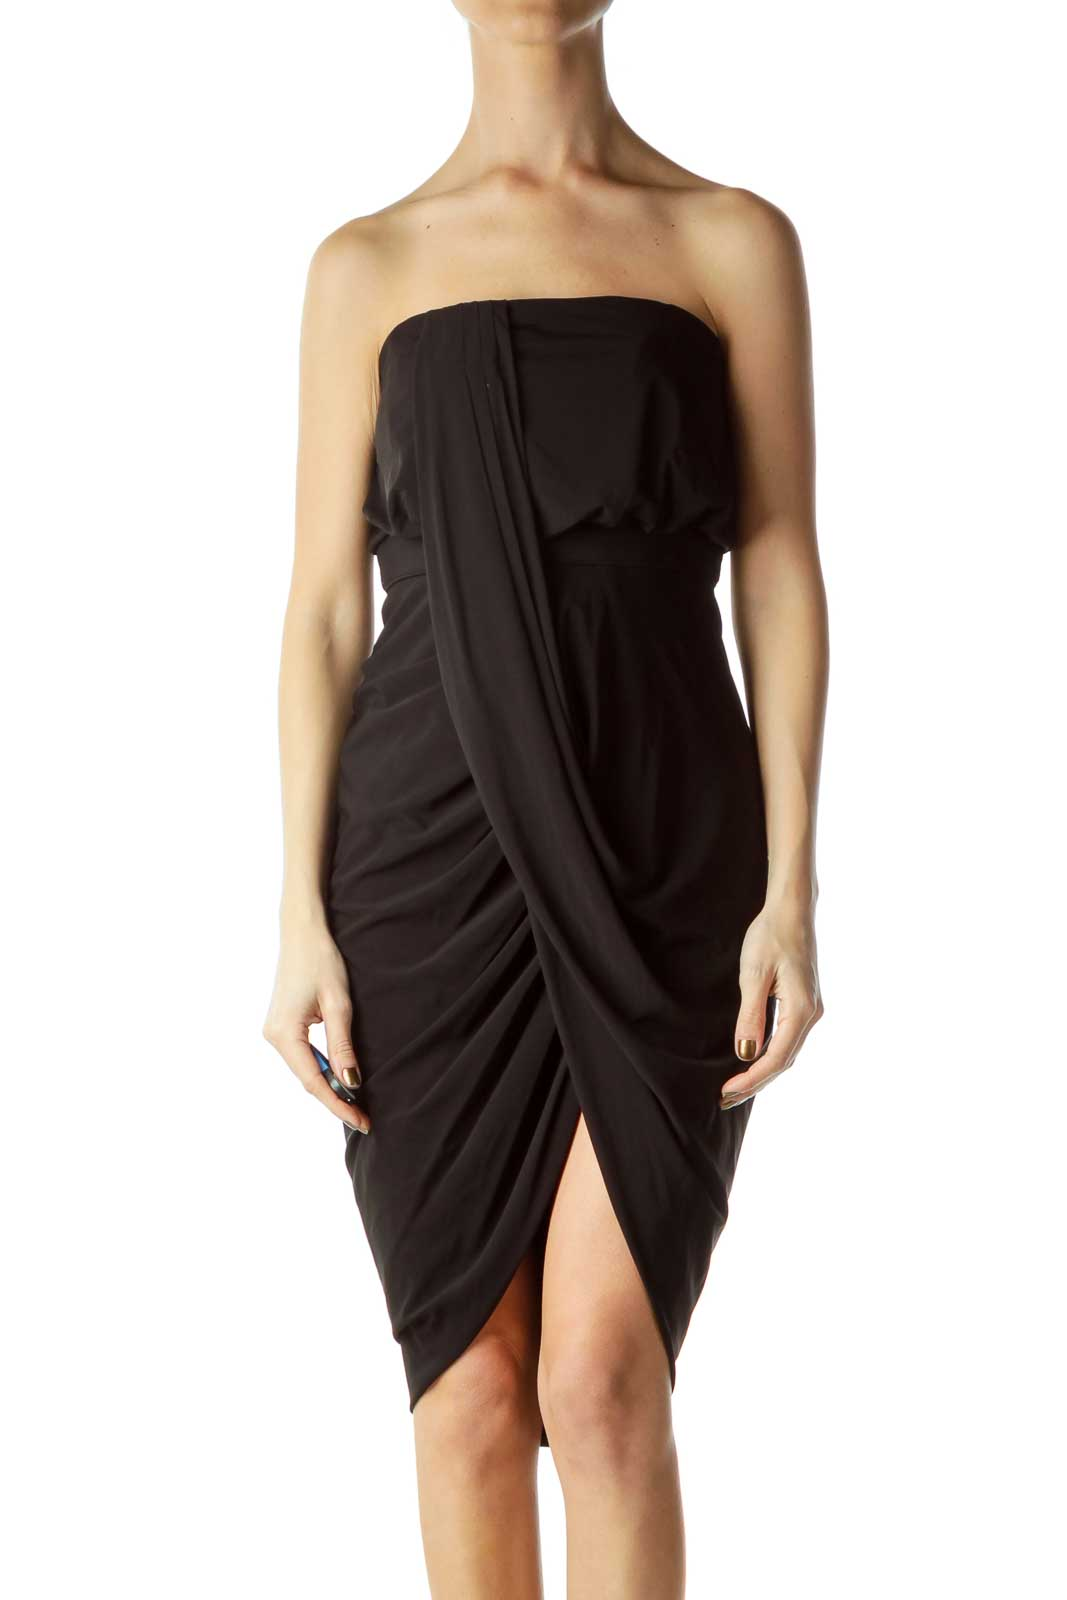 a7191d286c5c Shop Black Strapless Wrap Cocktail Dress clothing and handbags at SilkRoll.  Trade with us!